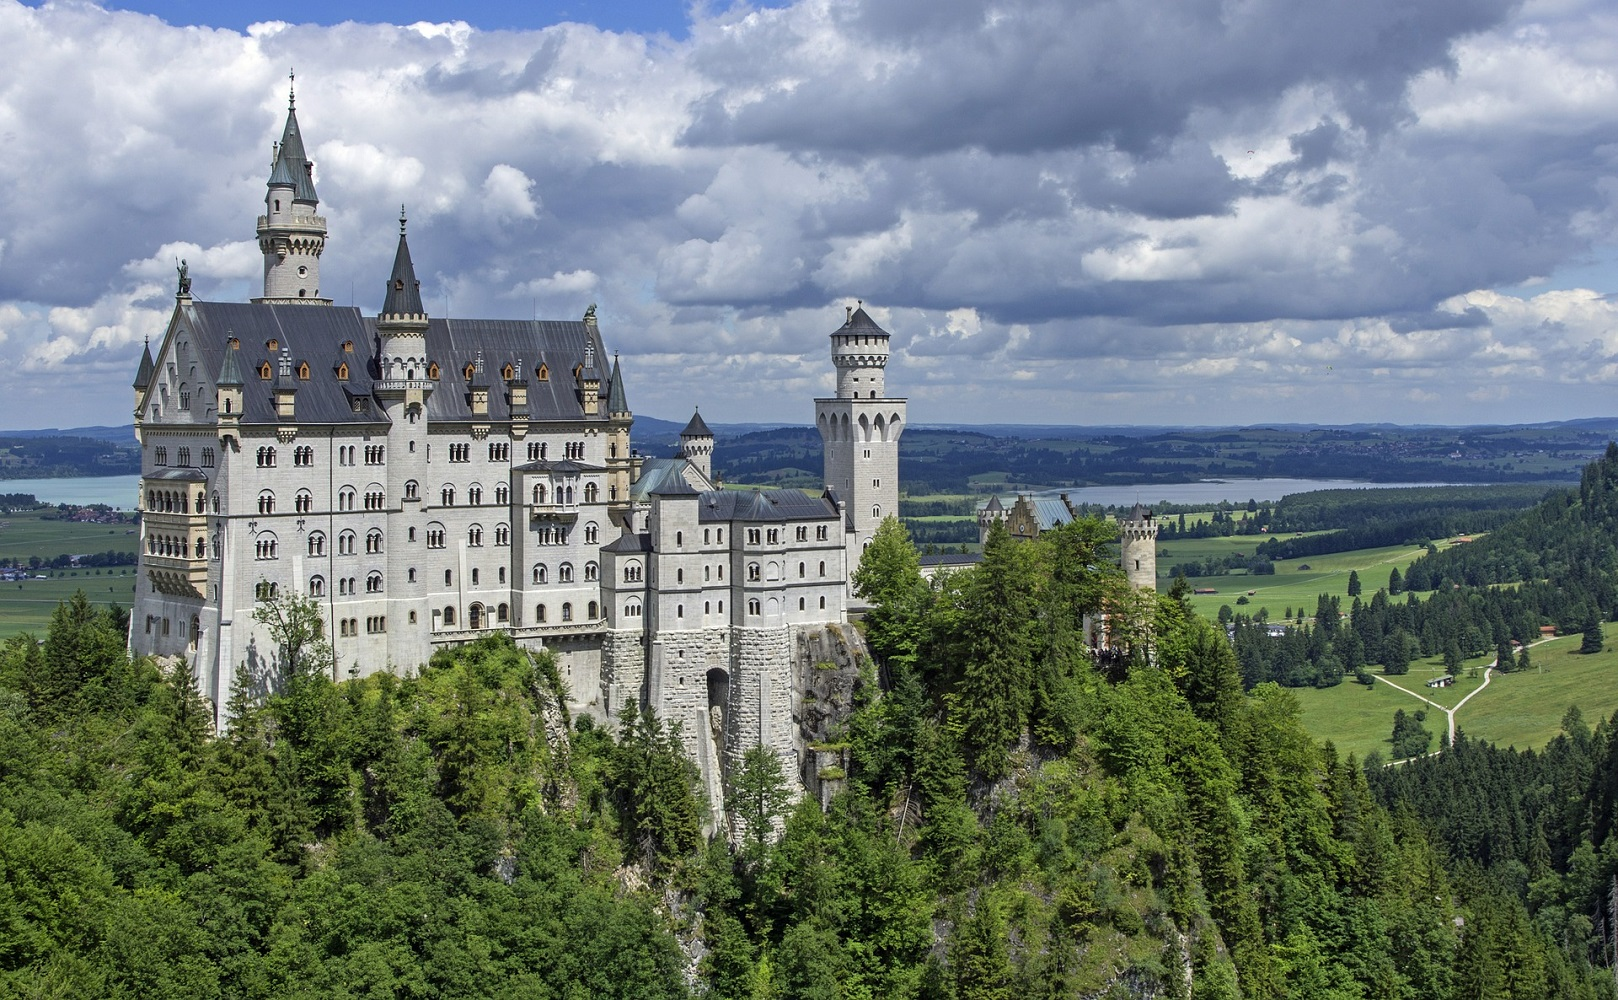 Neuschwanstein Castle in Bavaria